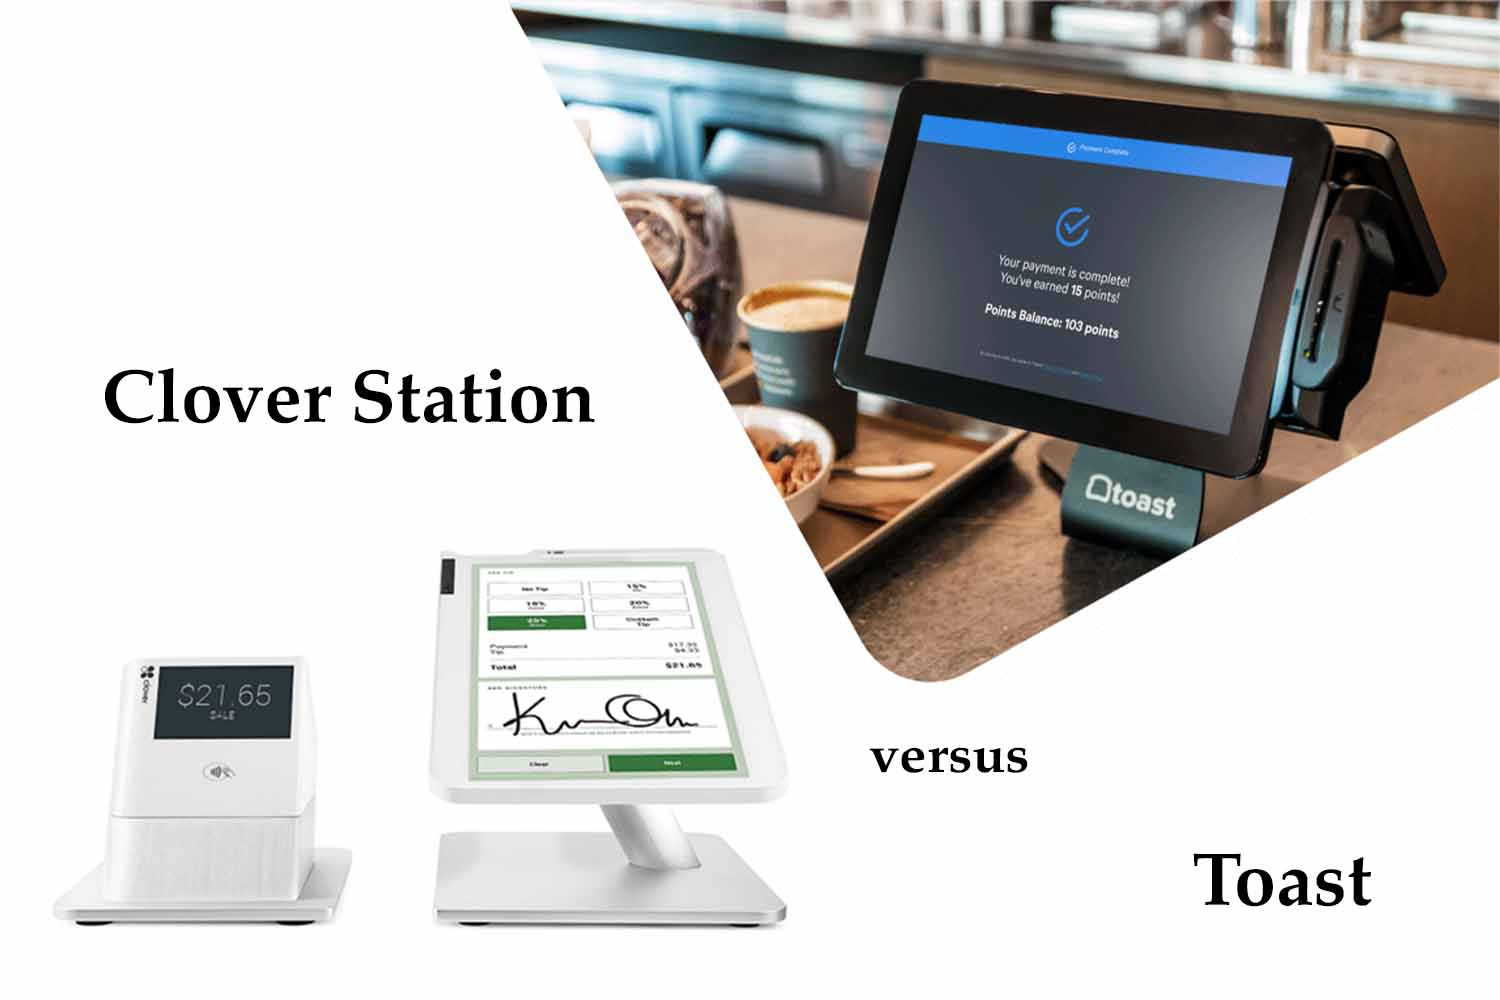 pic of the clover station versus the toast pos